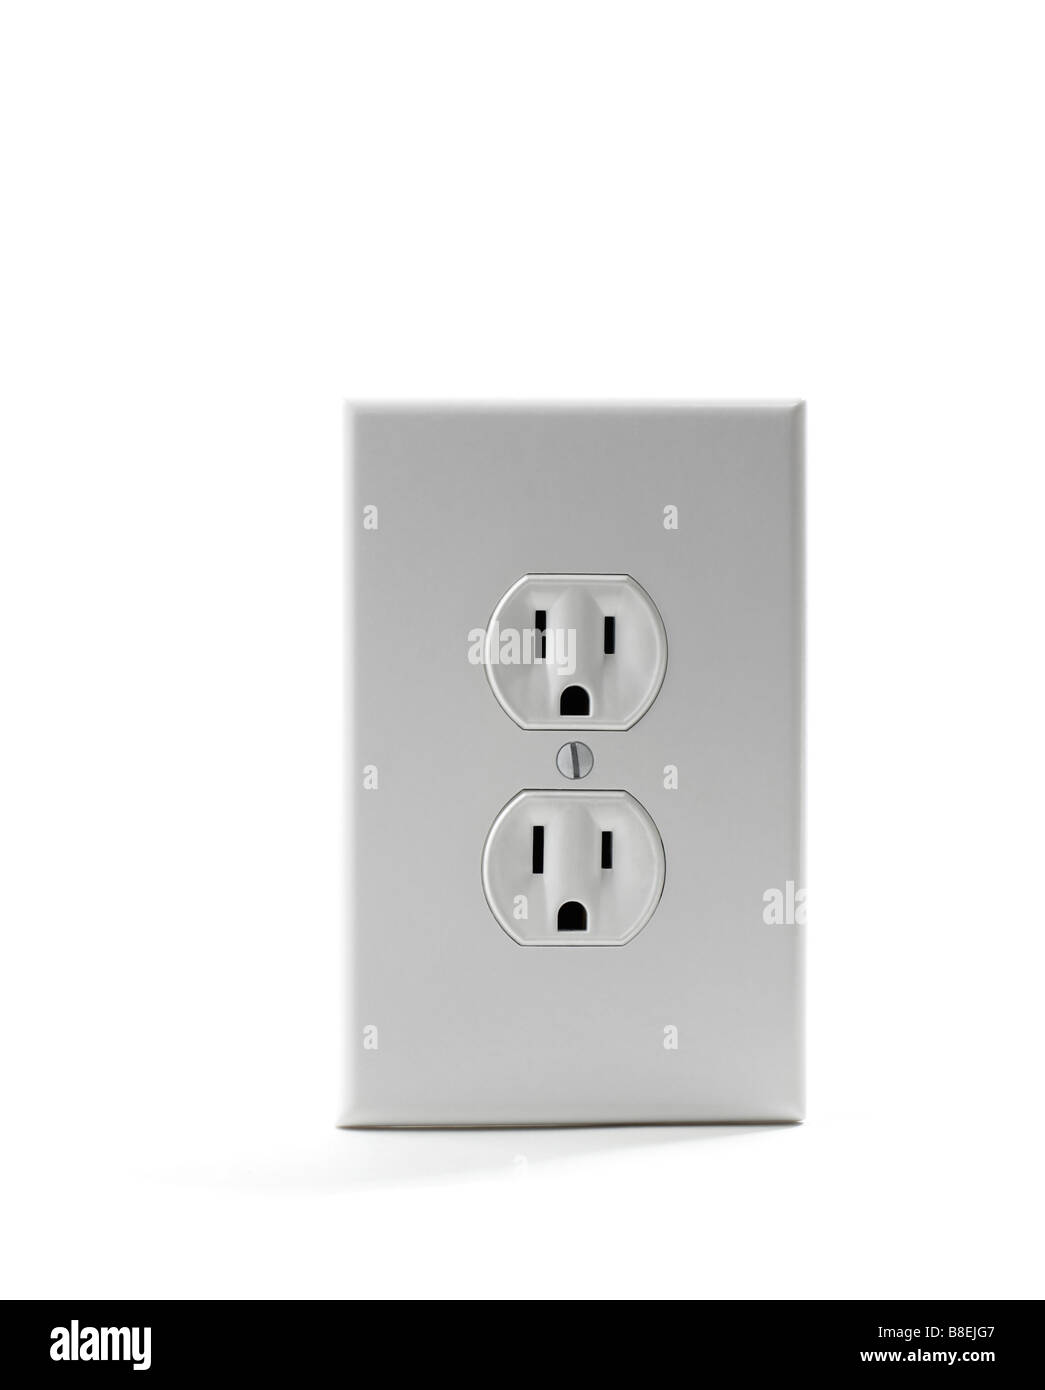 Electrical wall outlet - Stock Image